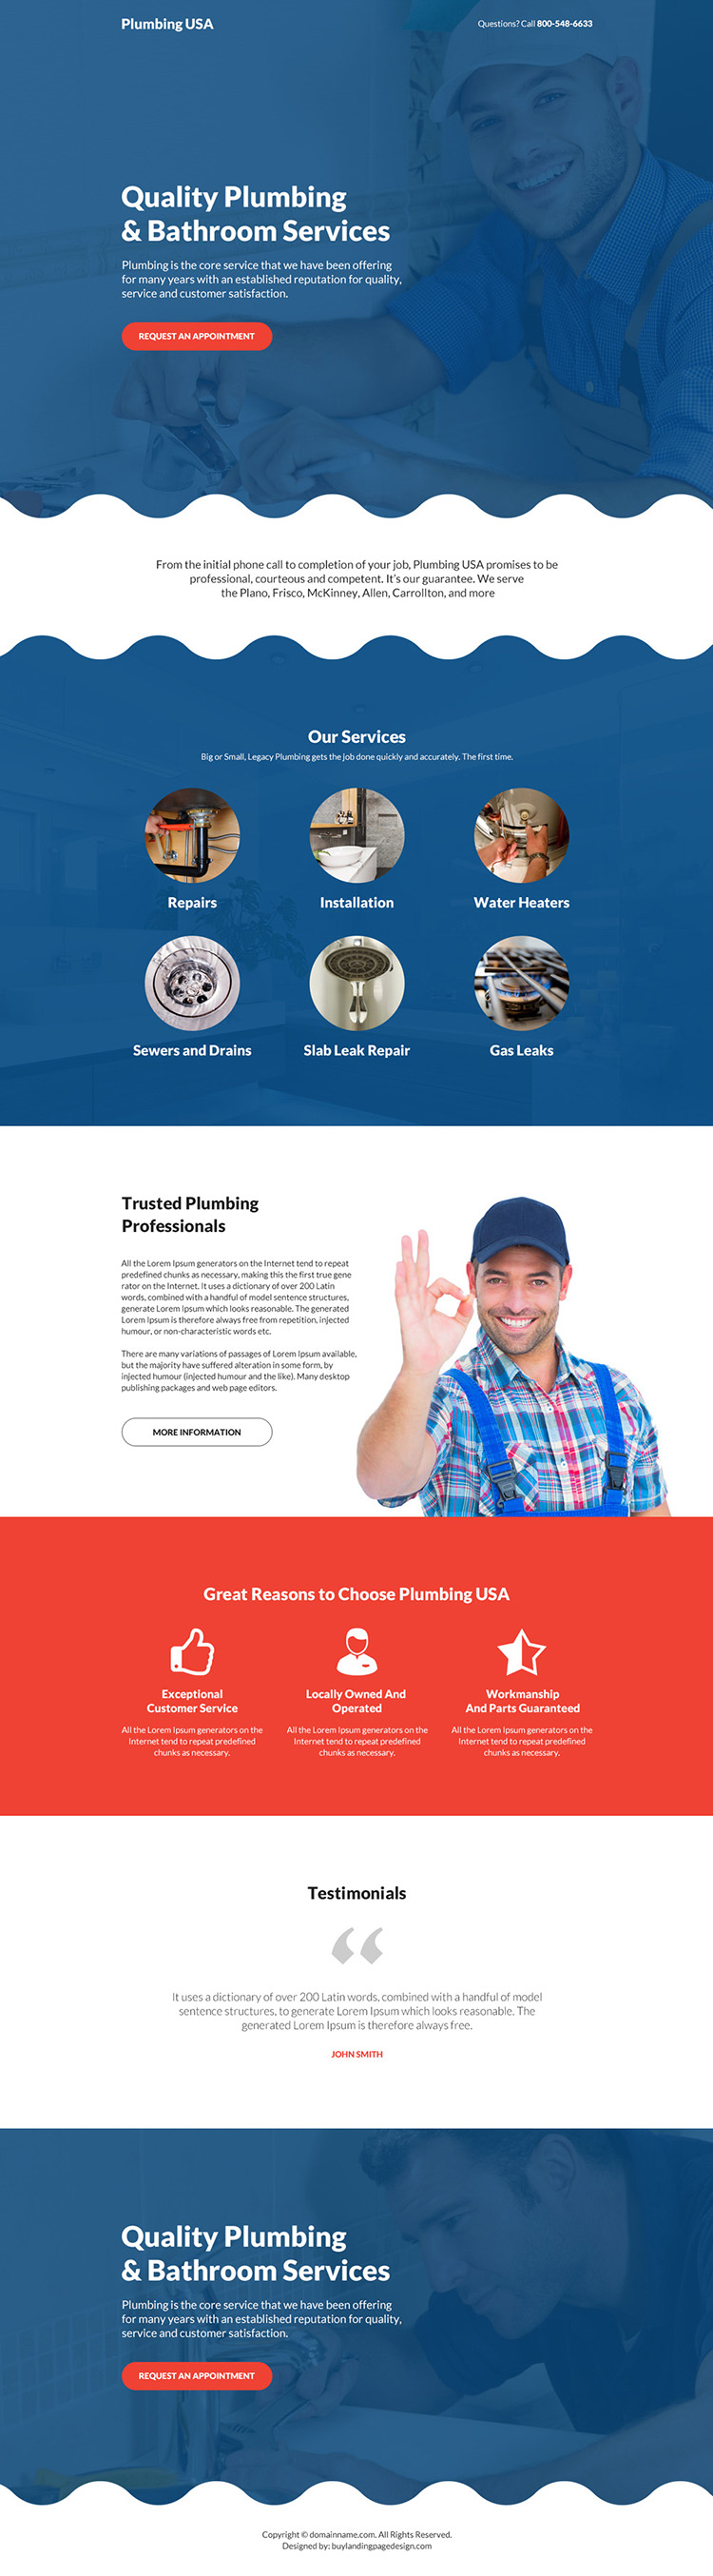 quality plumbing and bathroom services bootstrap landing page